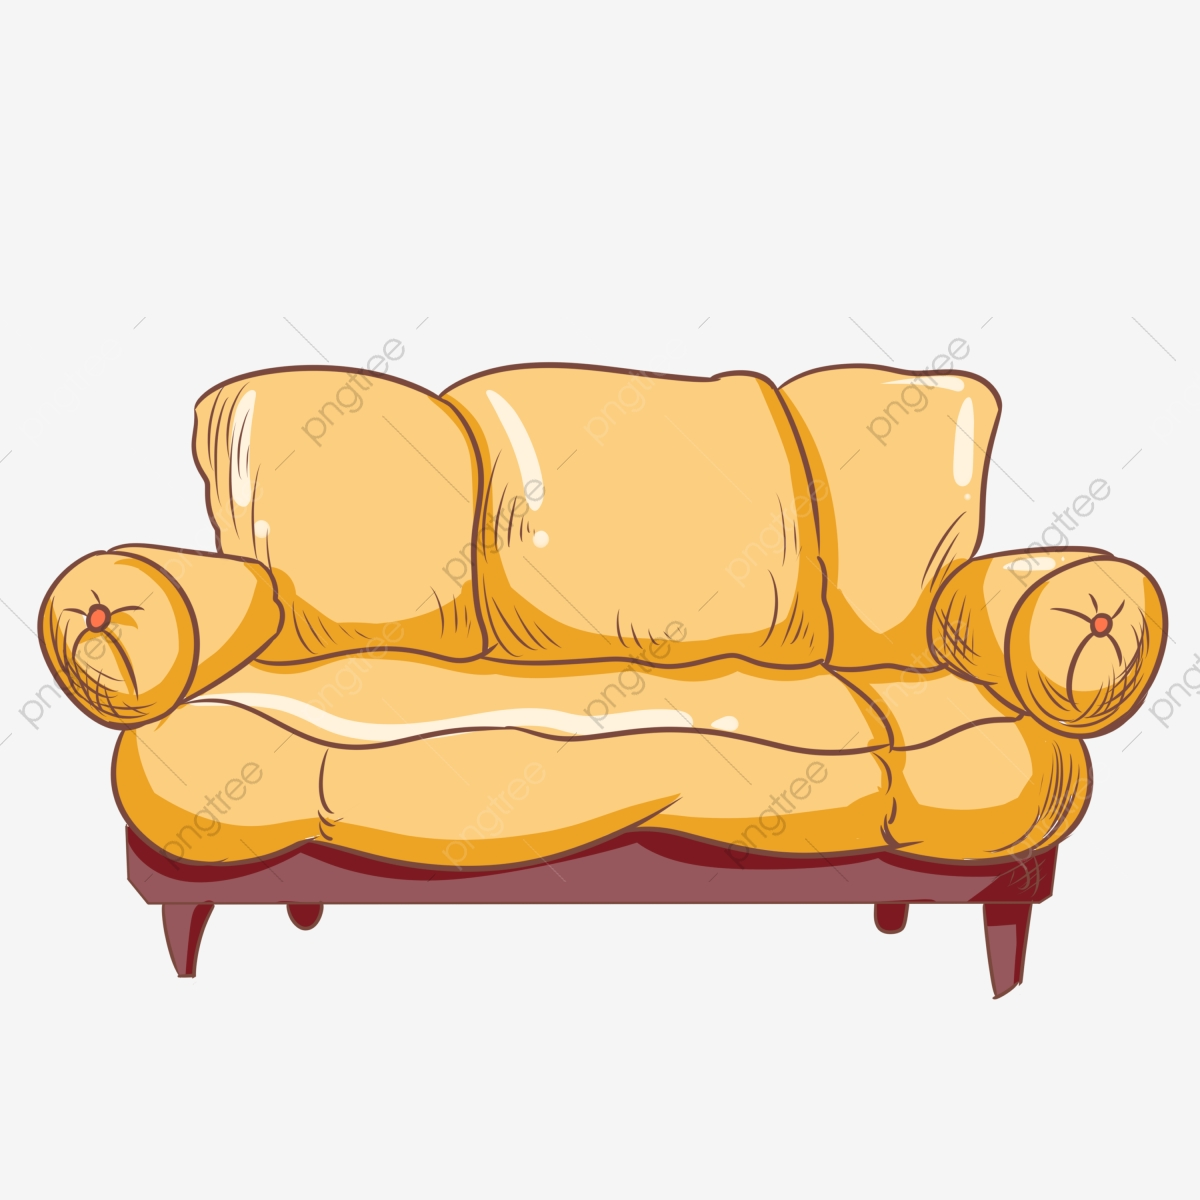 Yellow sofa hand painted. Couch clipart living room furniture